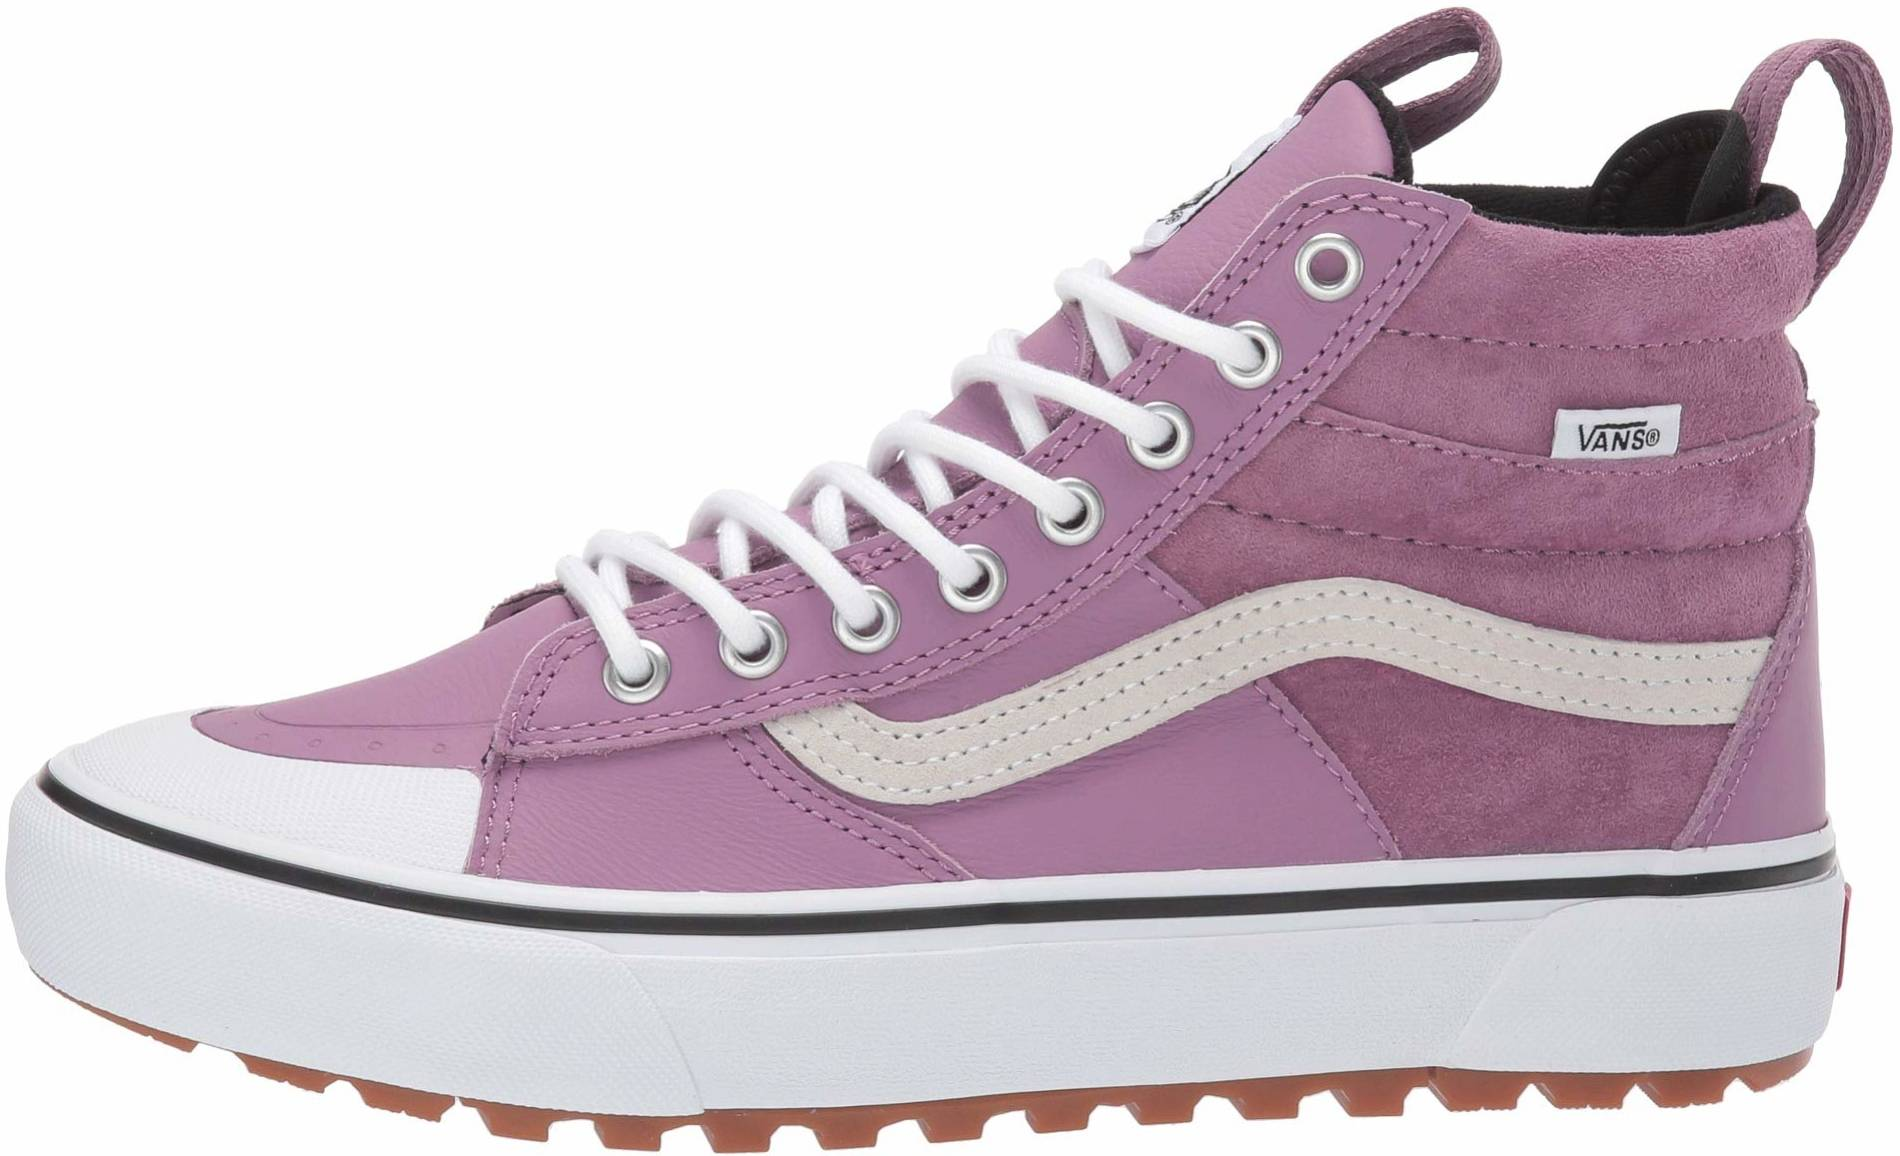 Save 31% on Pink Sneakers (107 Models